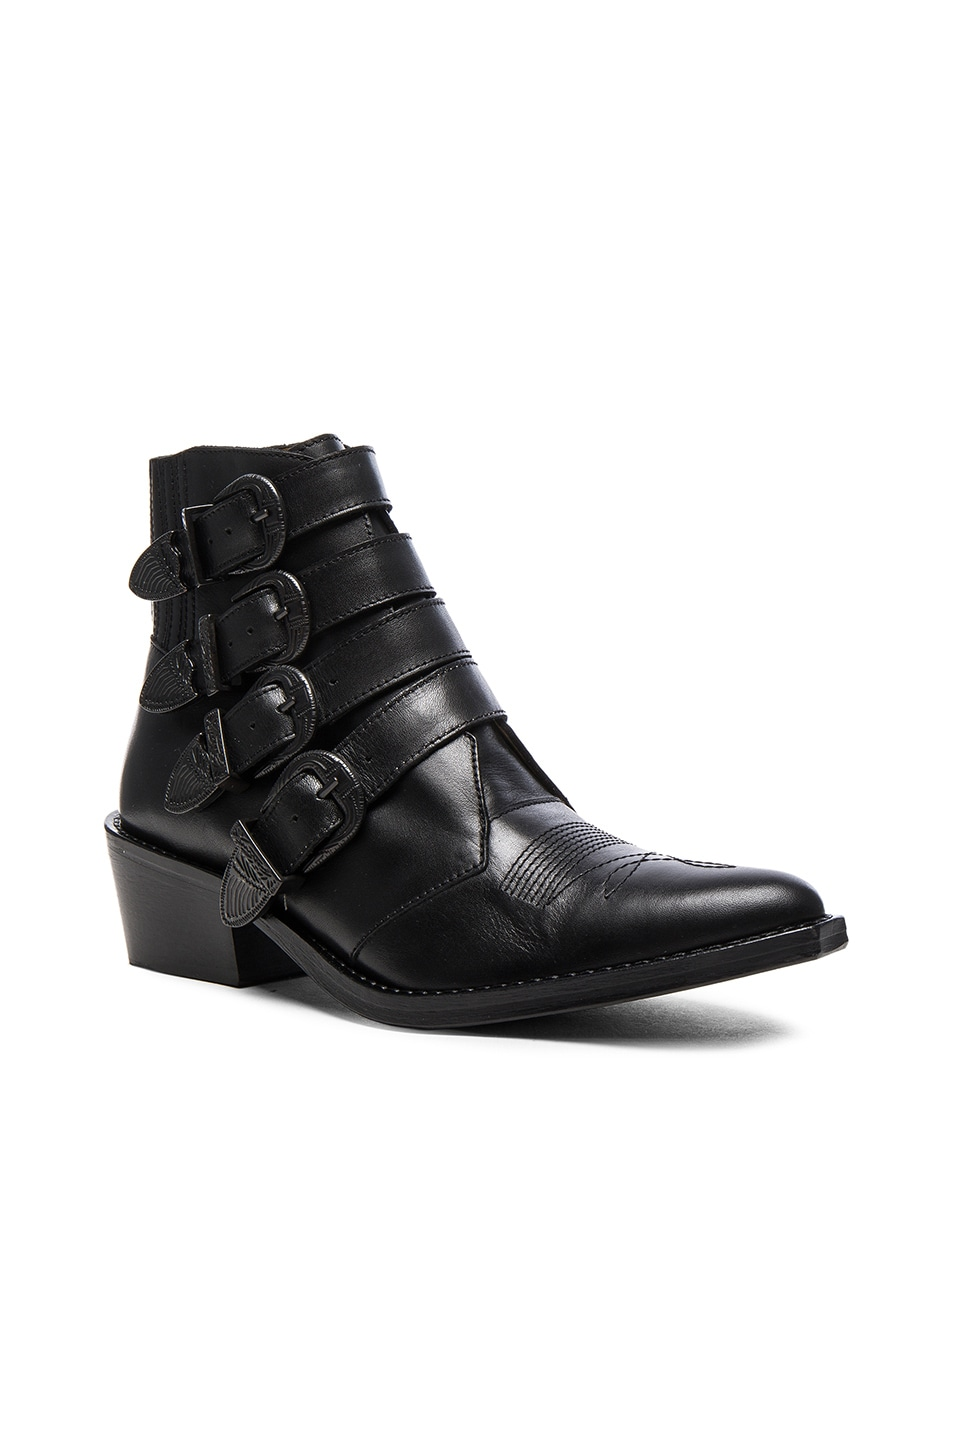 Image 2 of TOGA PULLA Buckled Leather Booties in Black Velvet